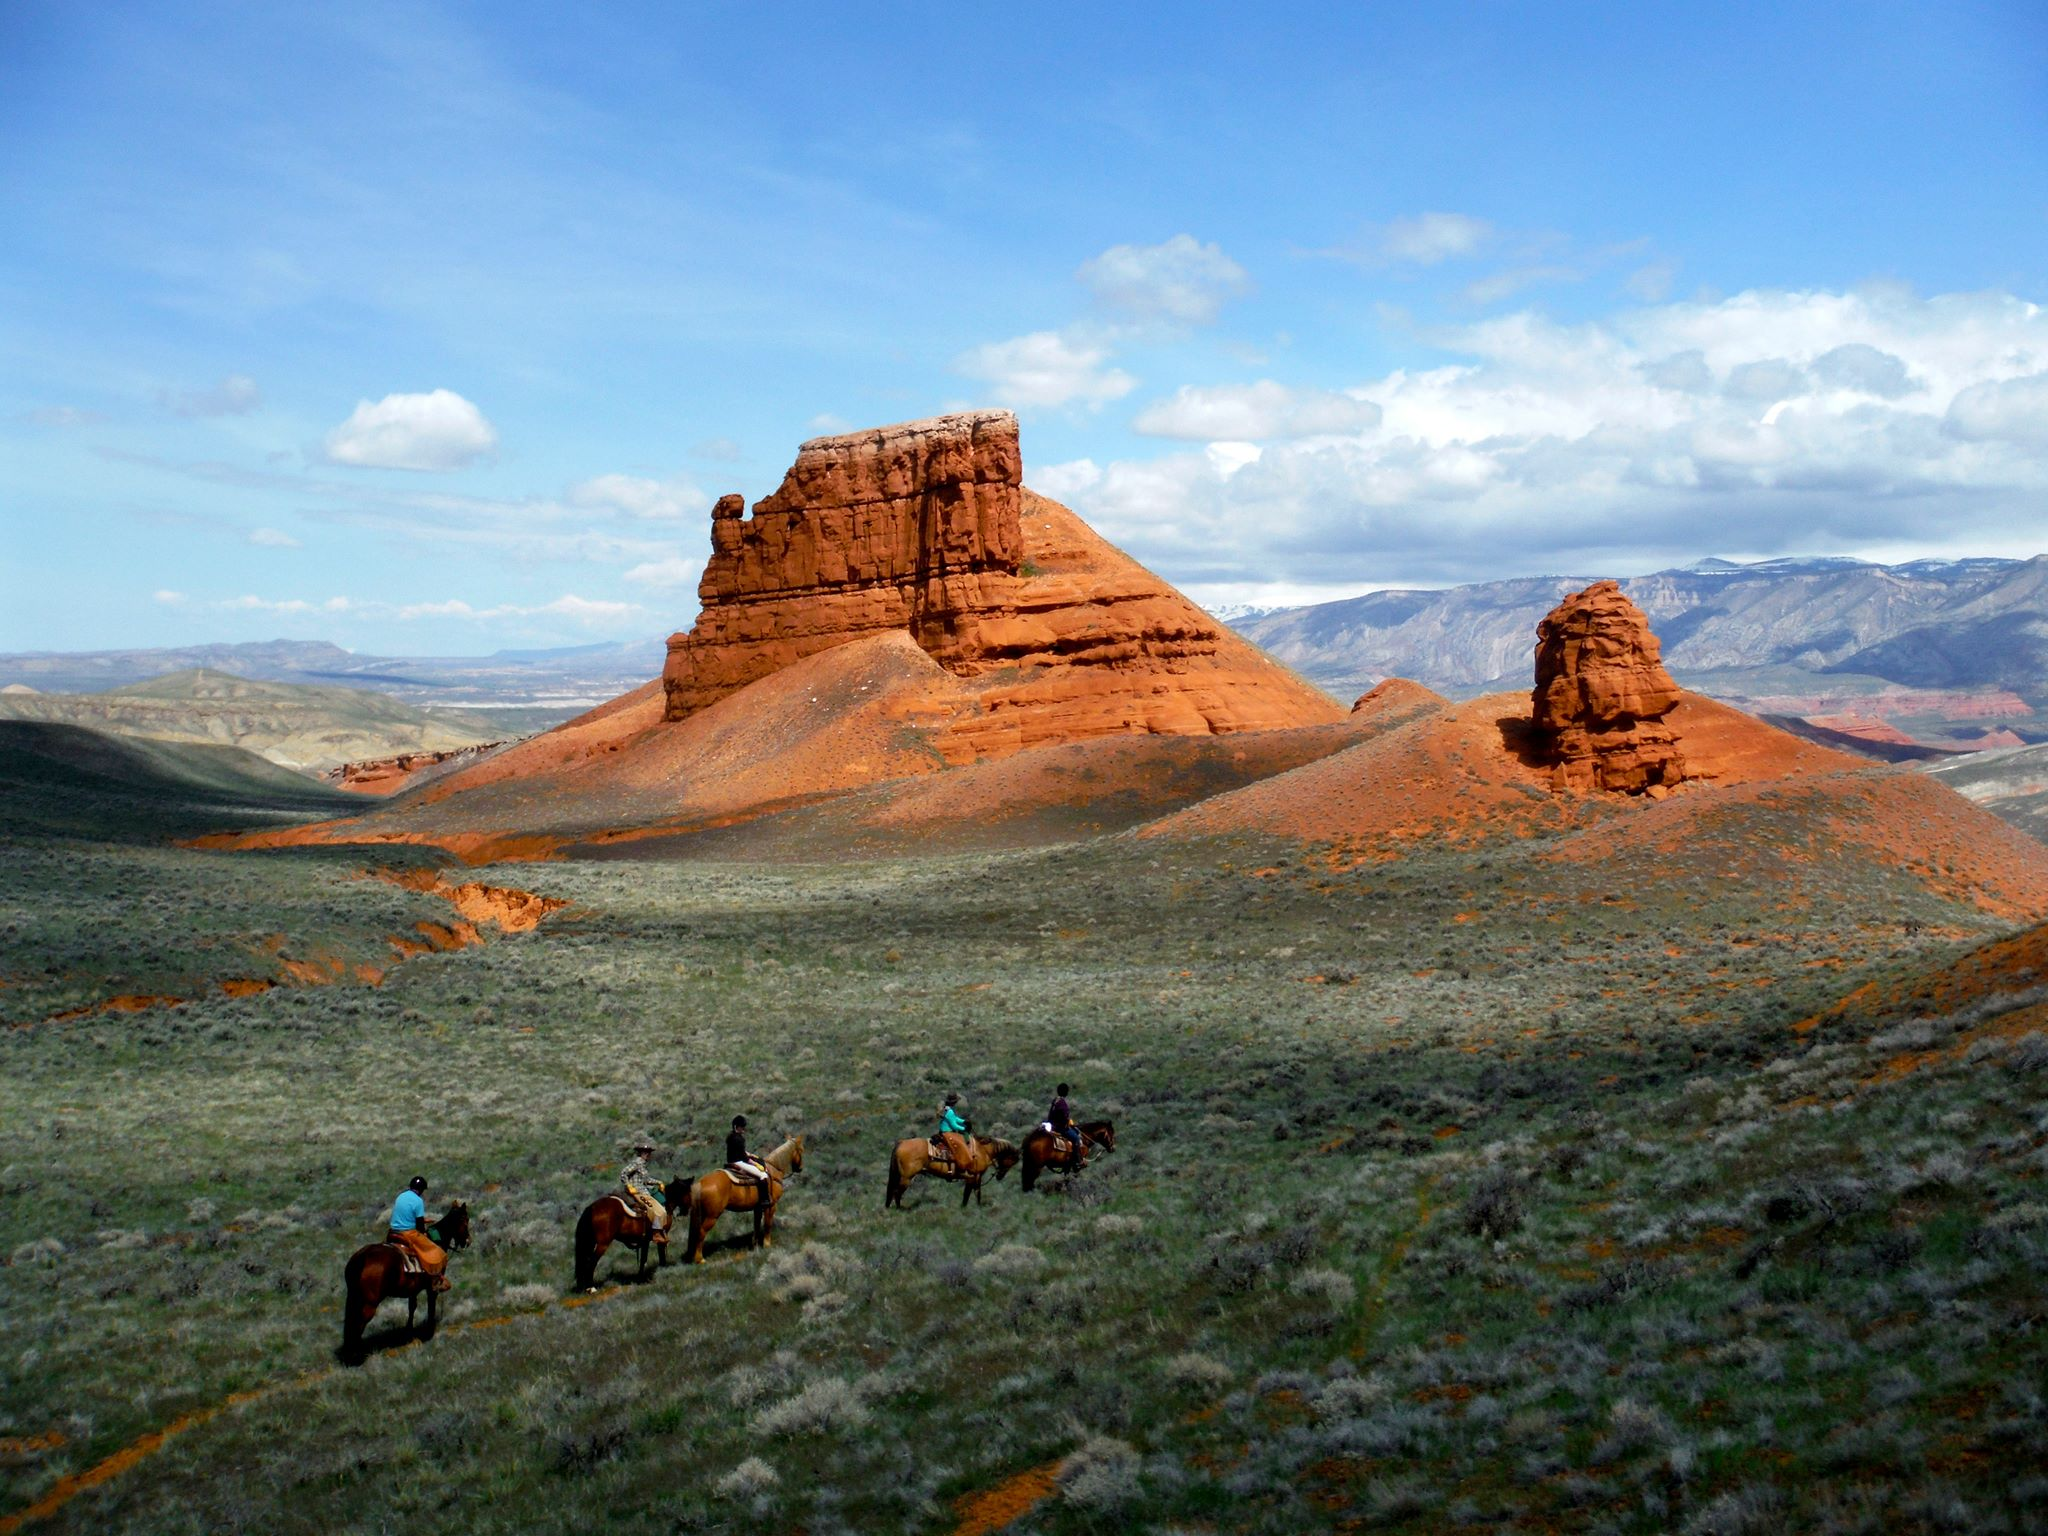 The Hideout Lodge and Guest Ranch offers shoulder season discounts